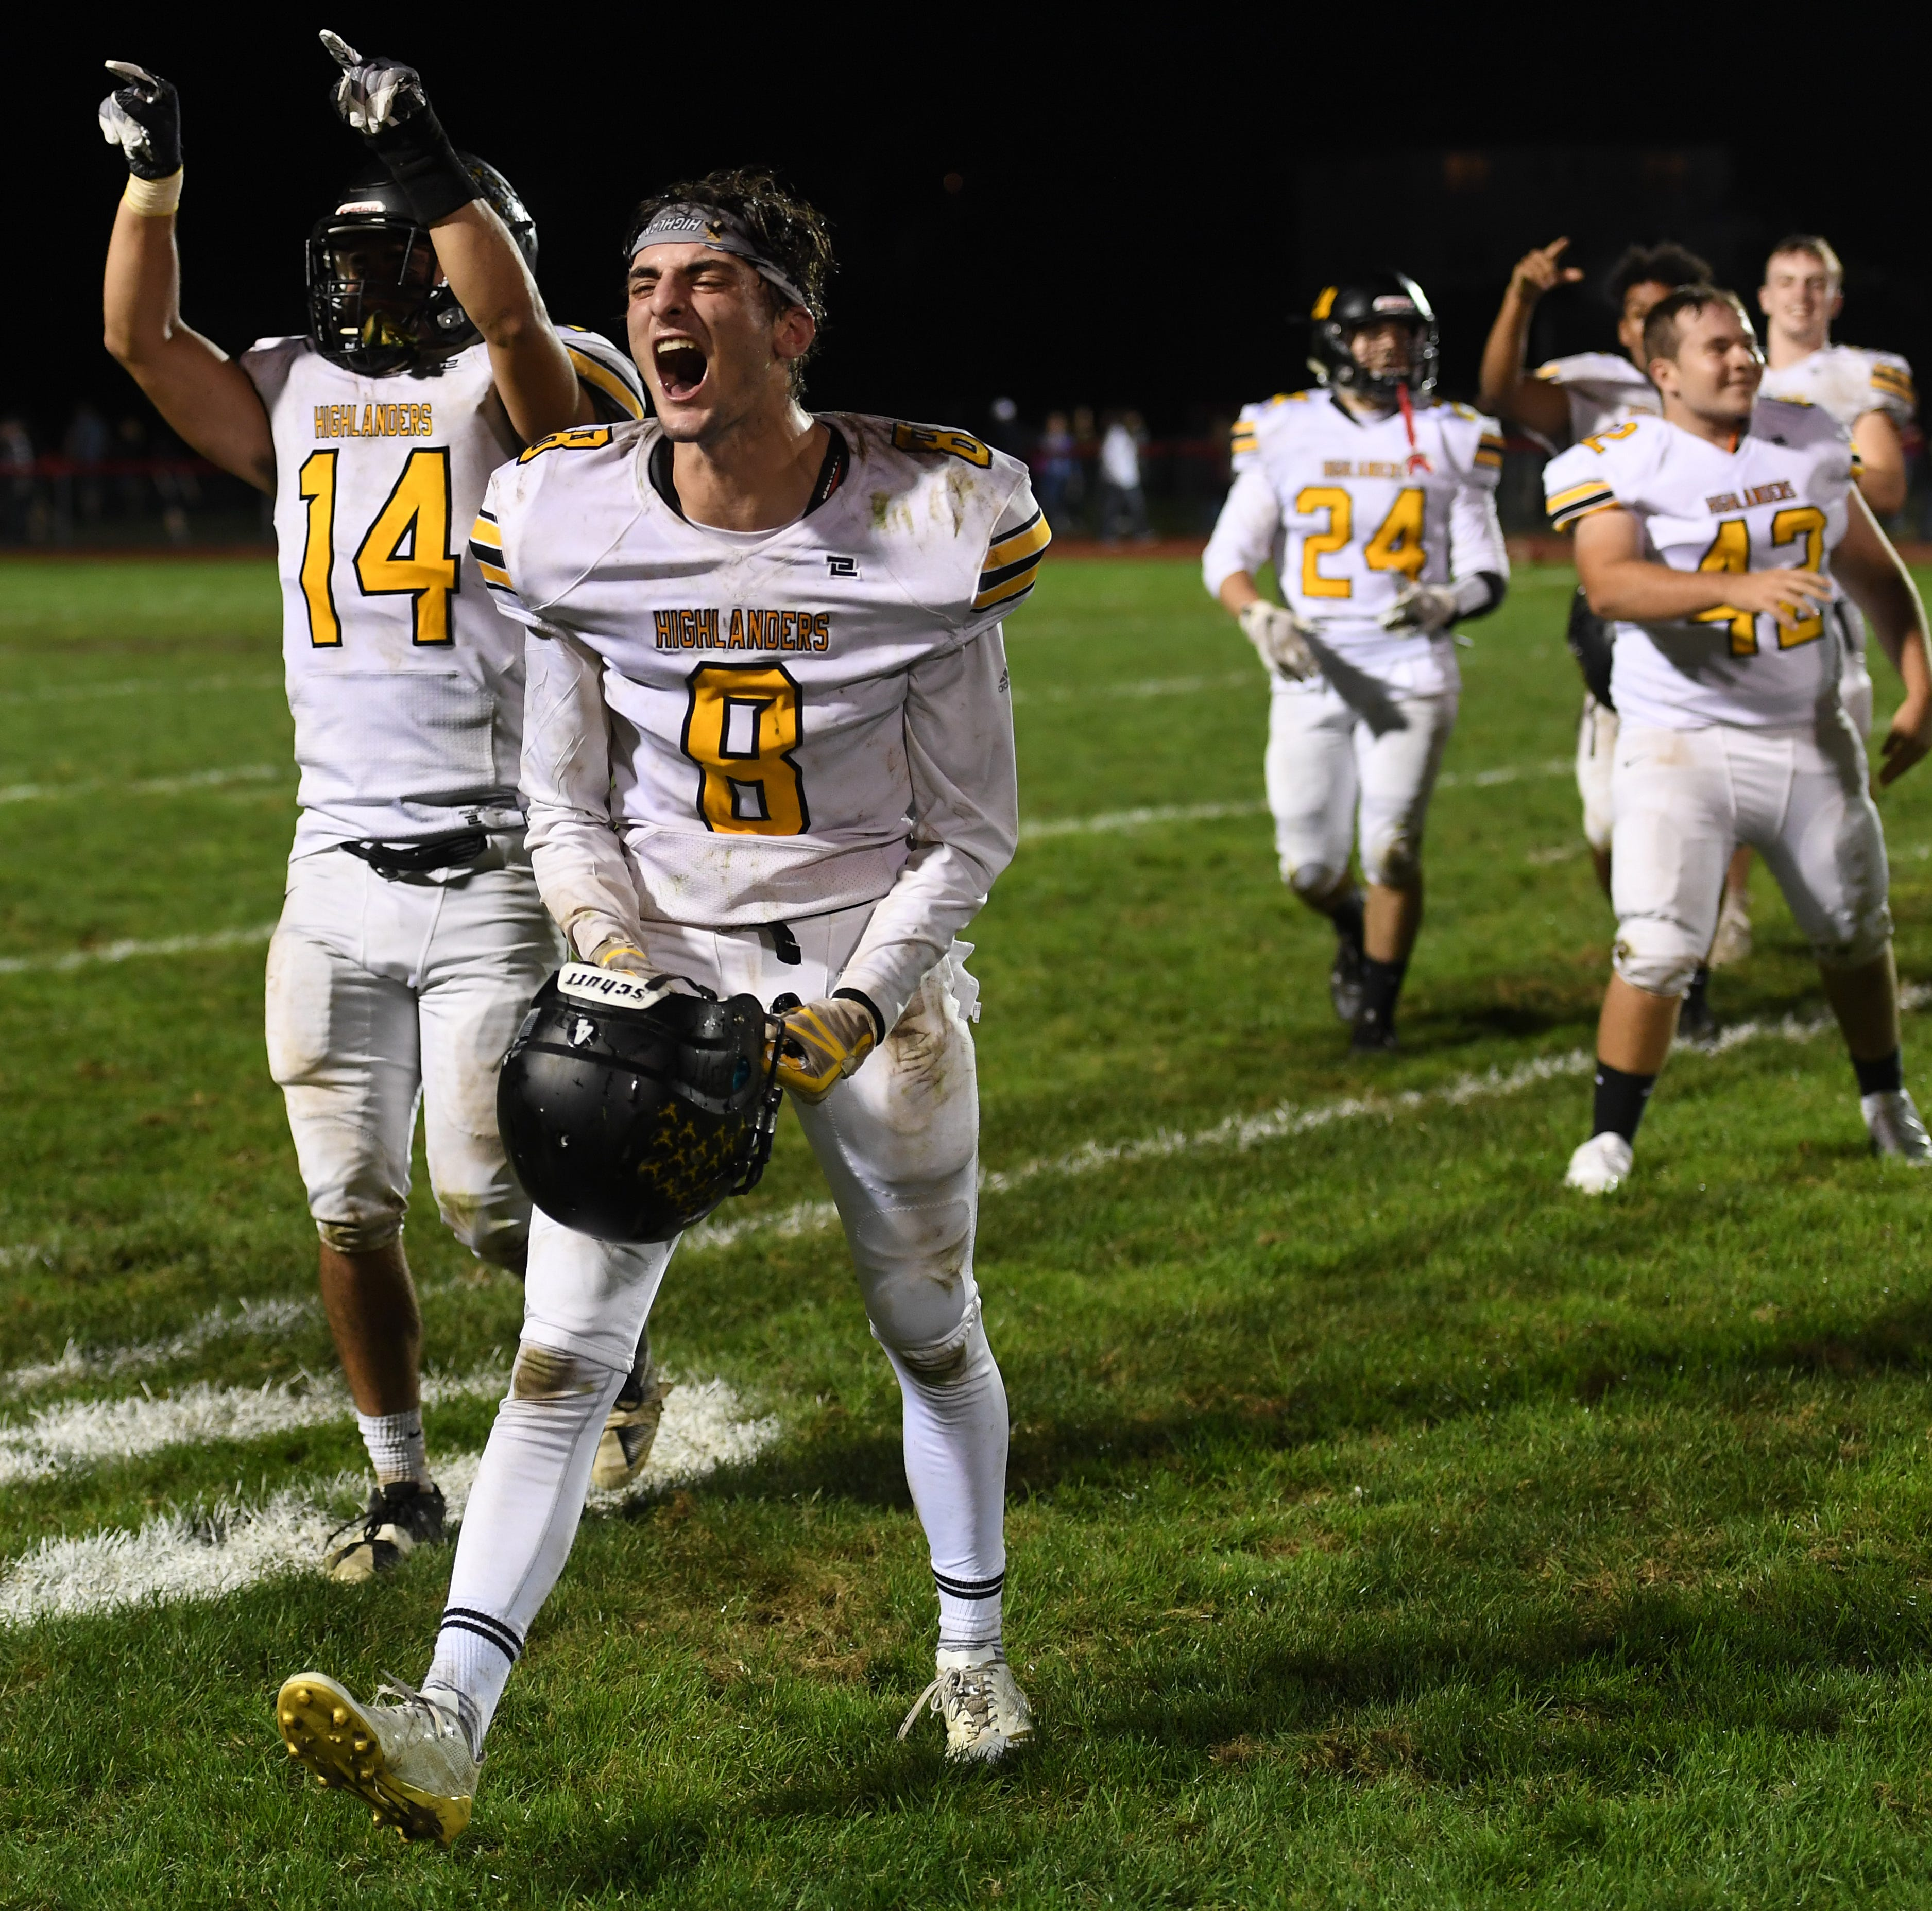 West Milford football comes back to beat Lakeland